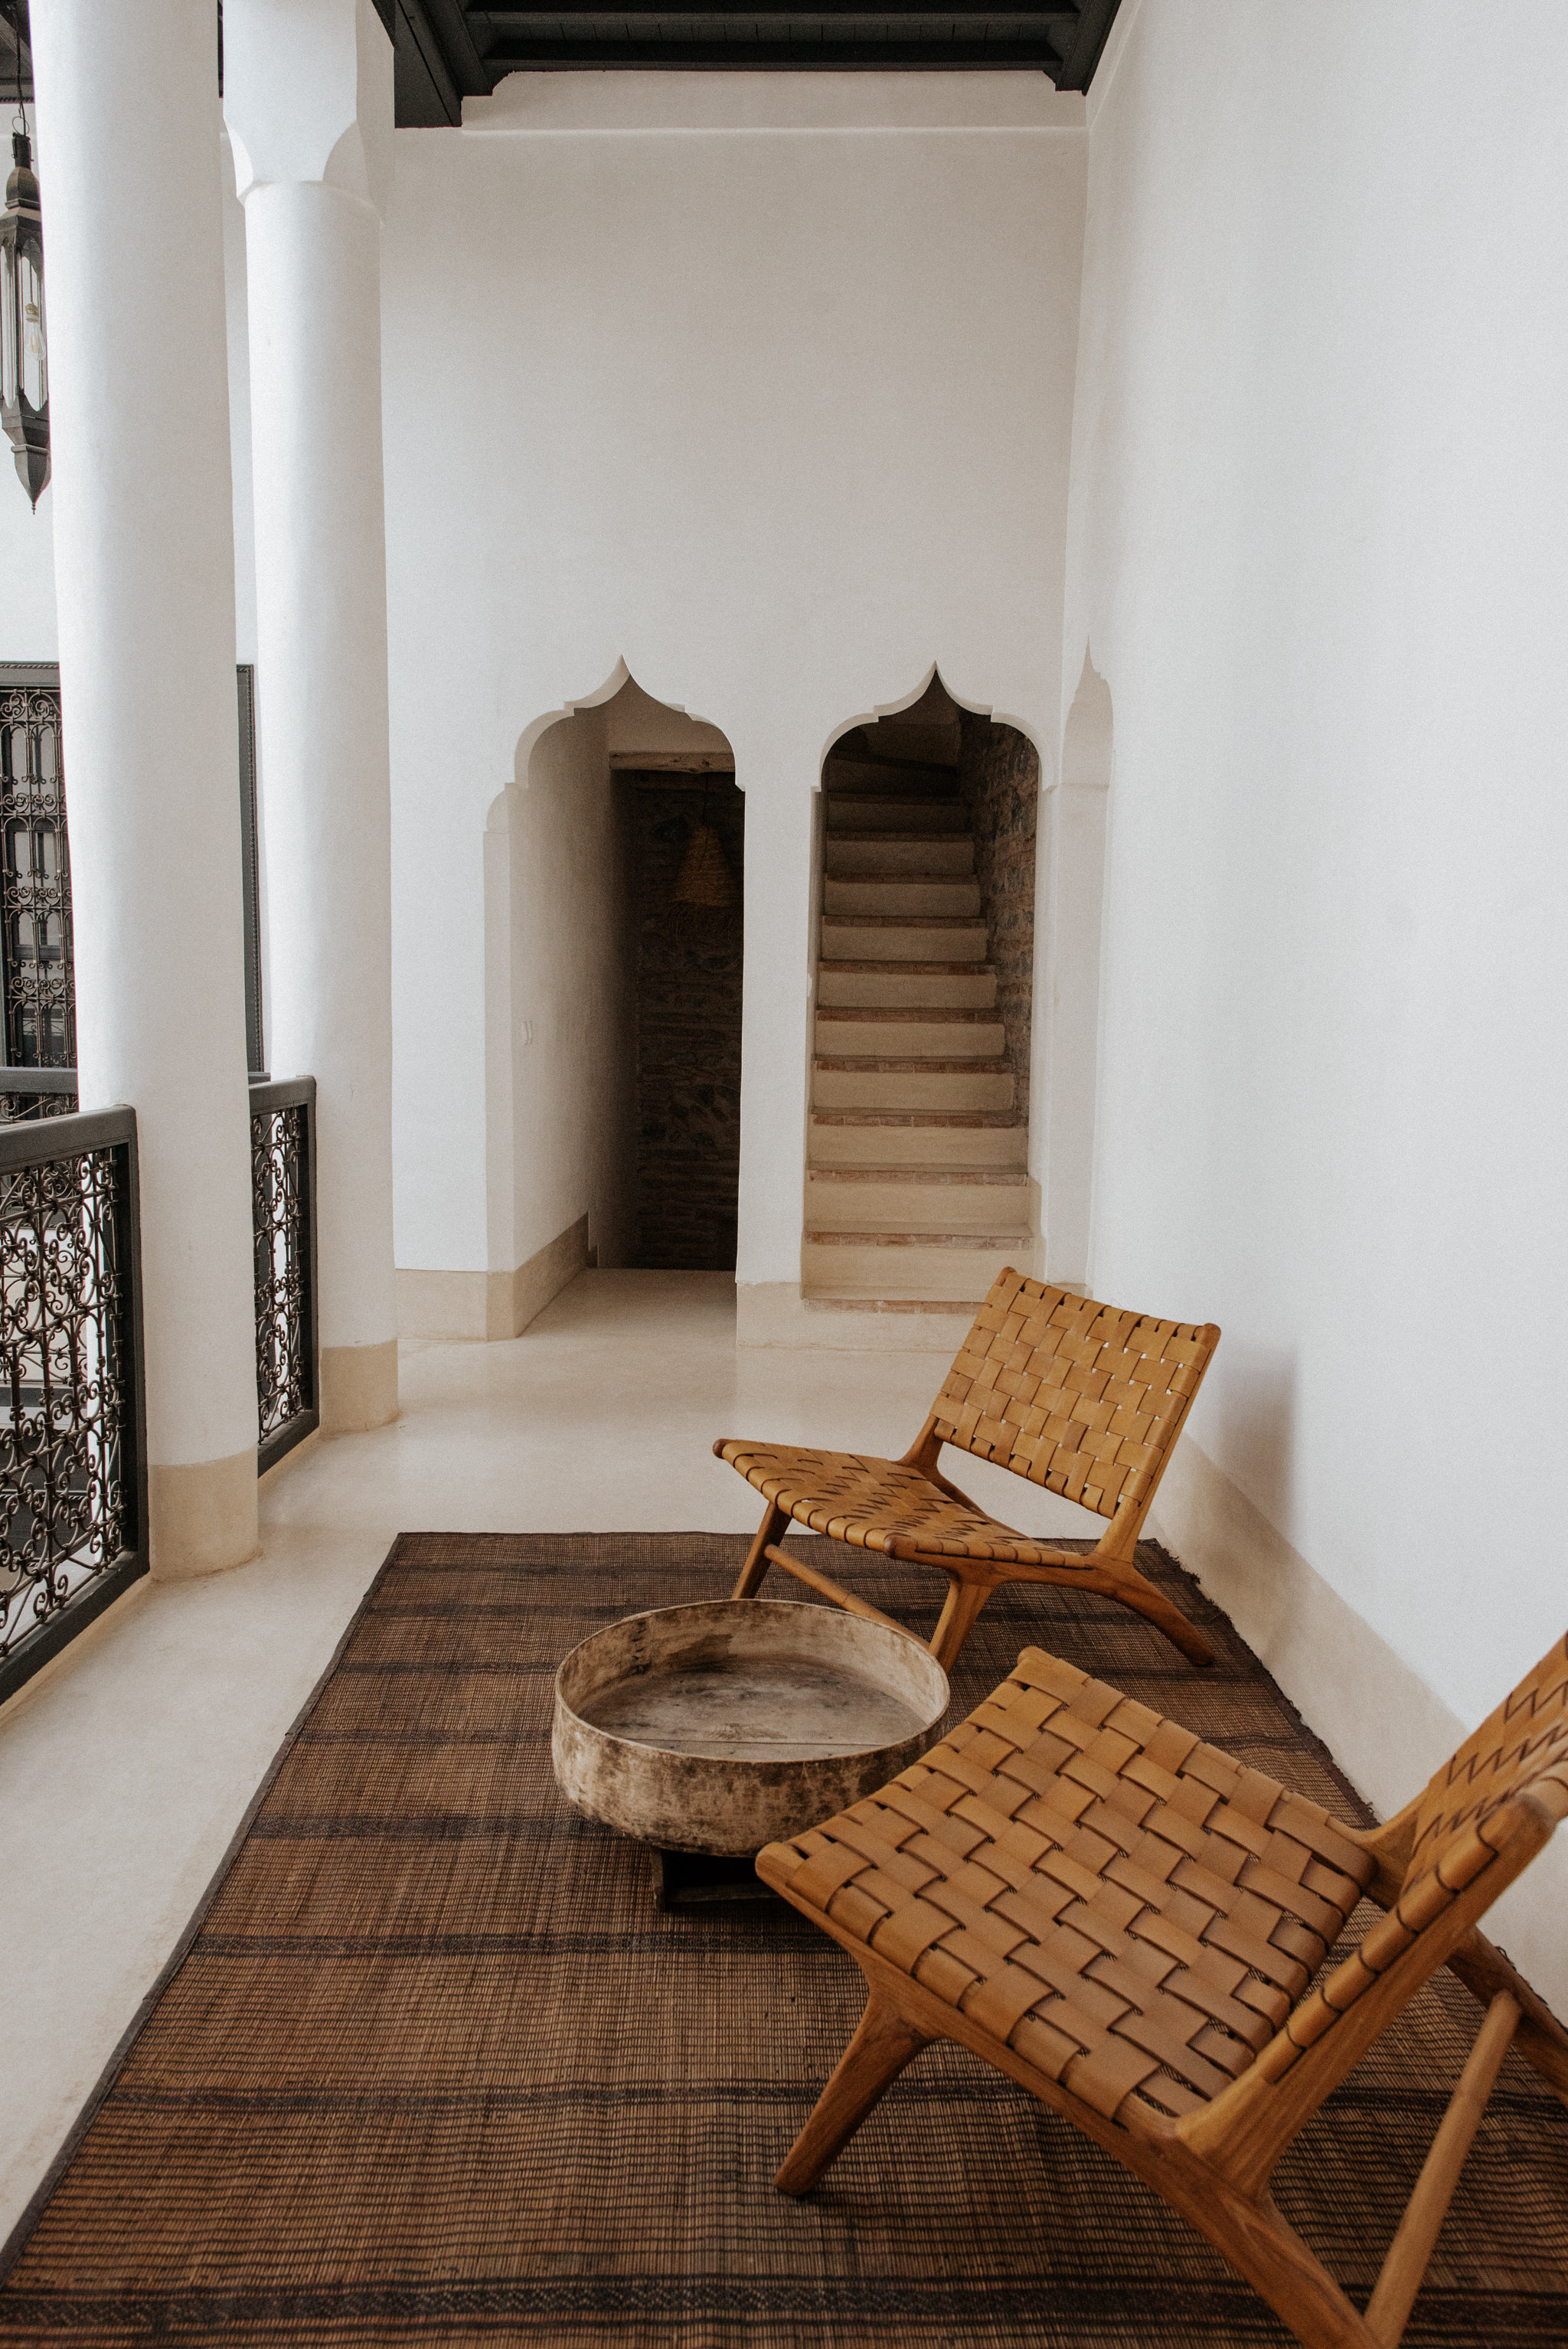 Minimalist interior at Riad 42 in Marrakech